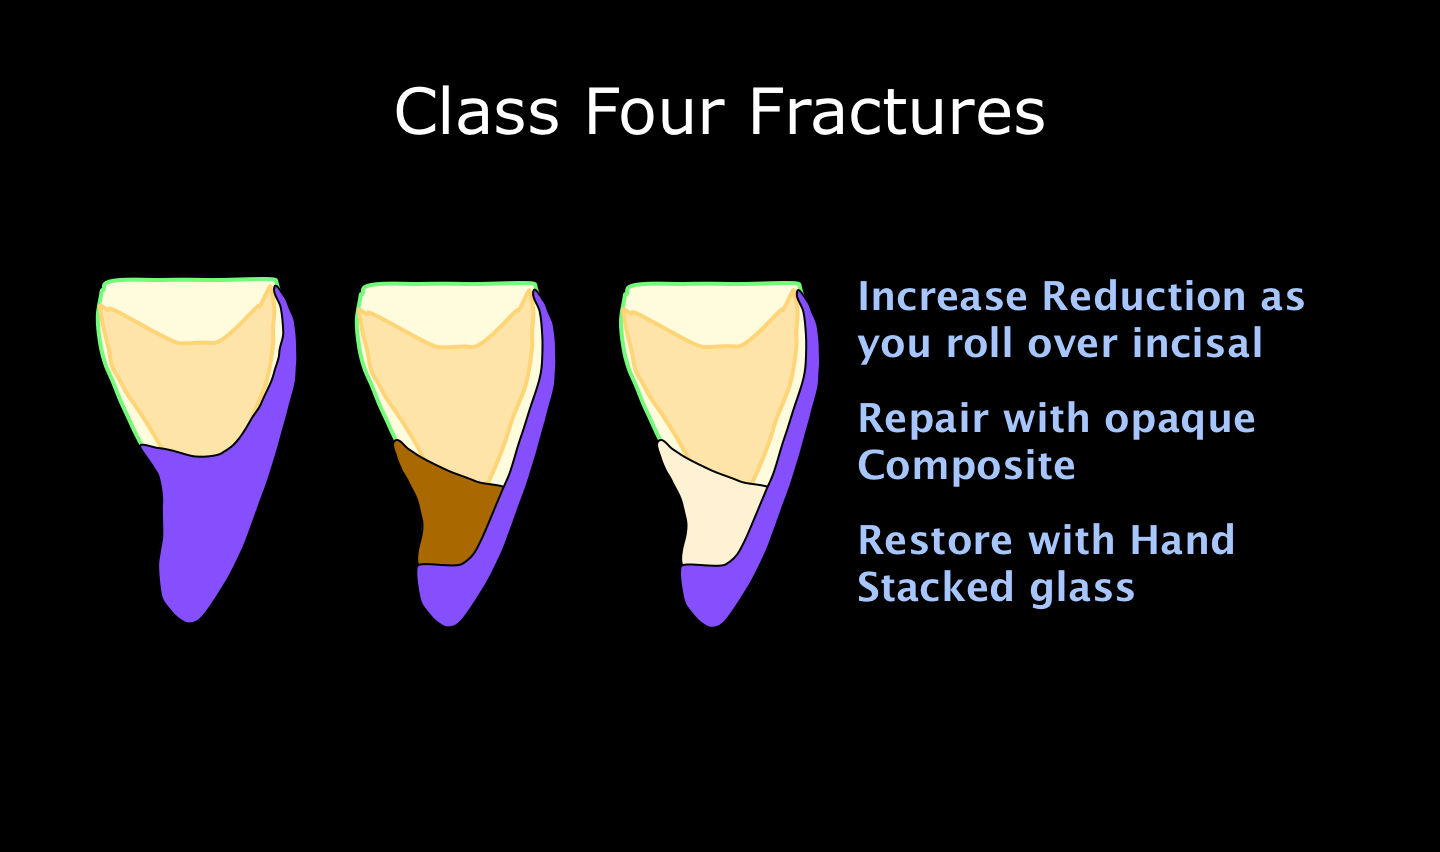 Video: Porcelain Veneer Over Class Four Fracture